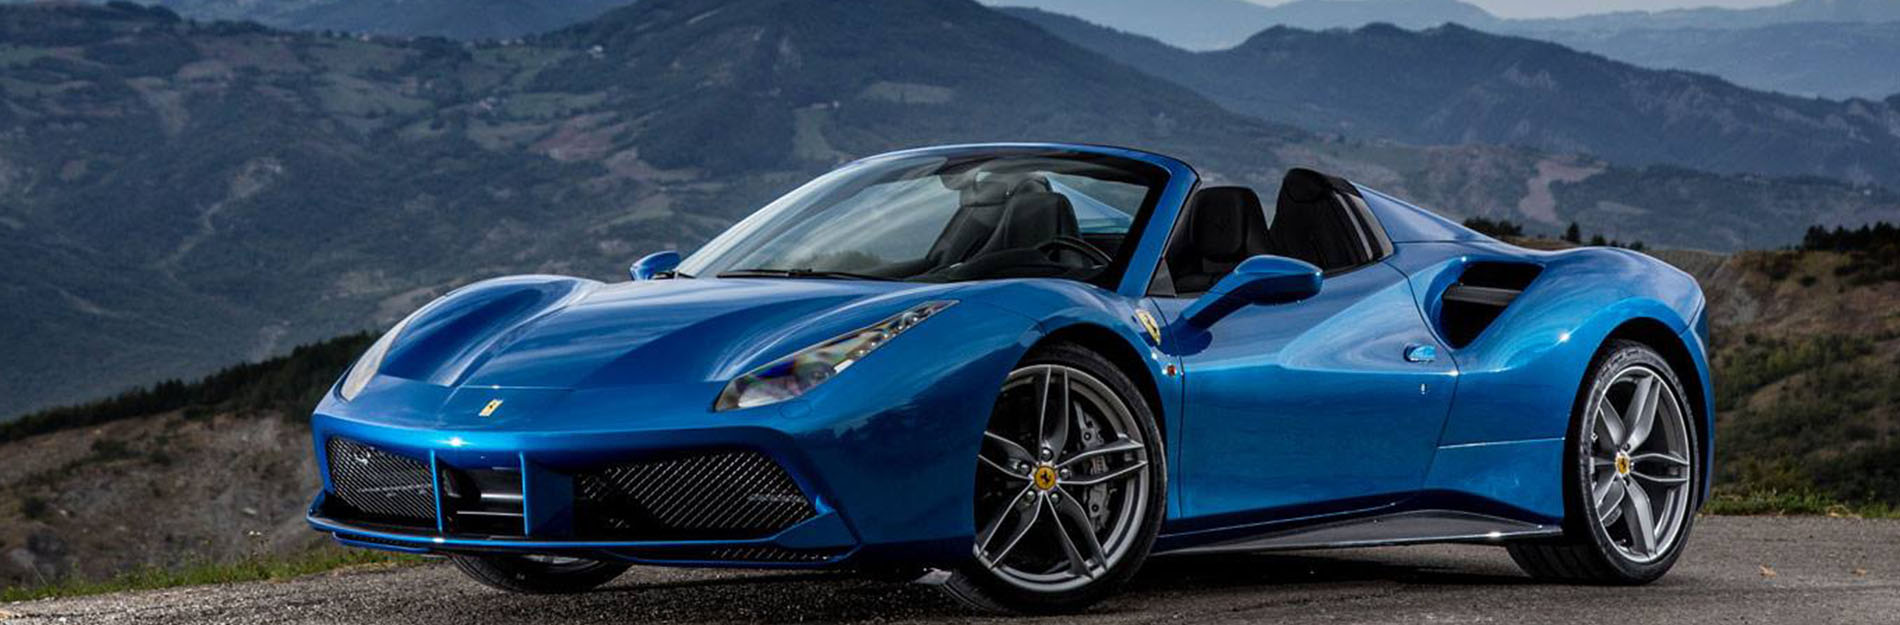 ferrari 488 spider mieten topgearcars. Black Bedroom Furniture Sets. Home Design Ideas